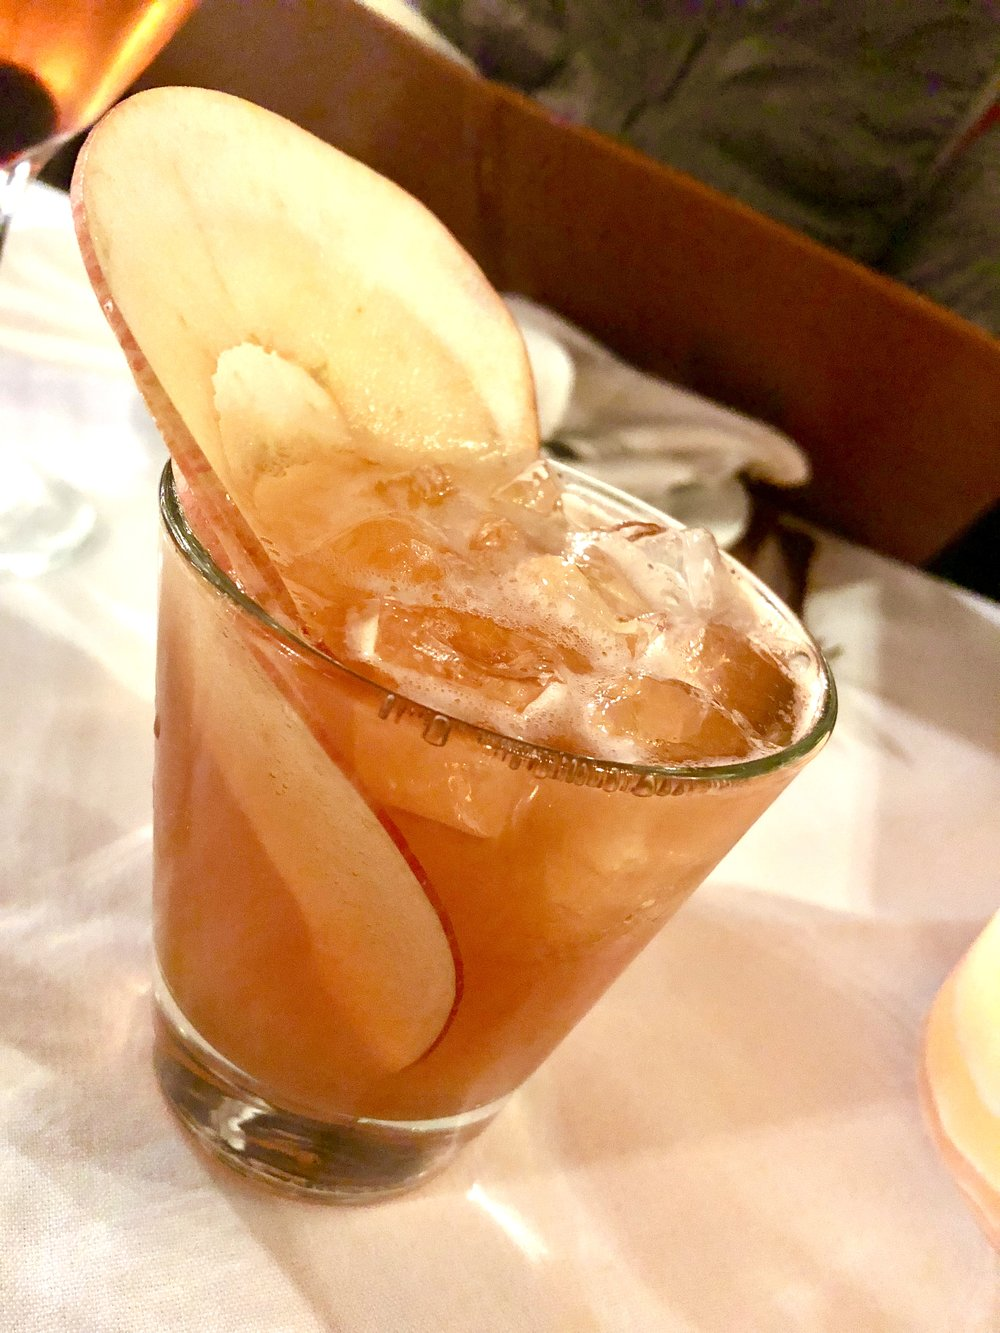 Shrub Cocktail at Ananda - Bourbon, honeycrisp apple, and ginger.